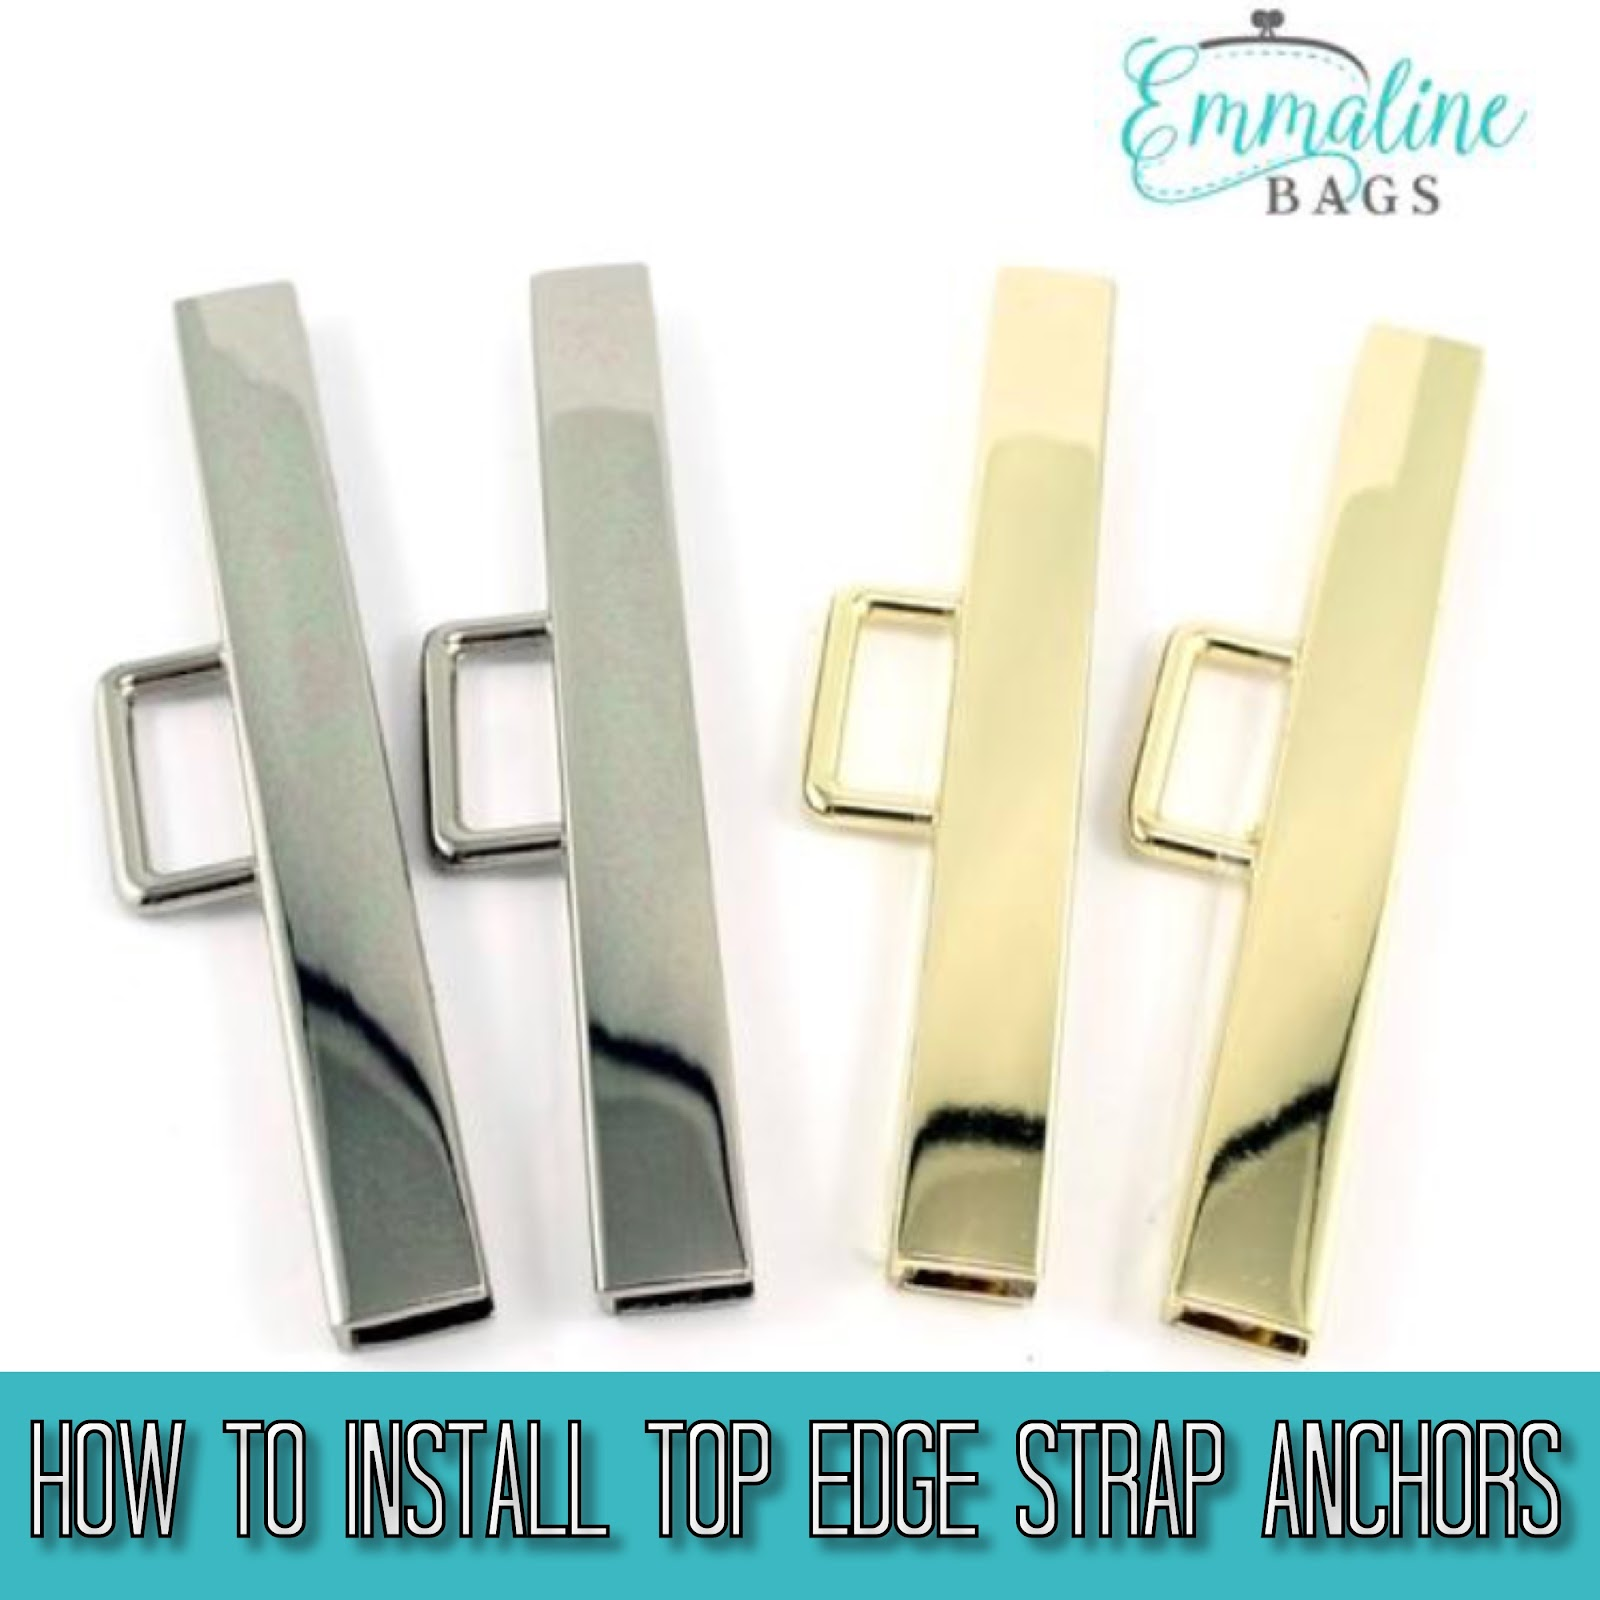 A strap anchor hardware installation bag making tutorial by Emmaline Bags